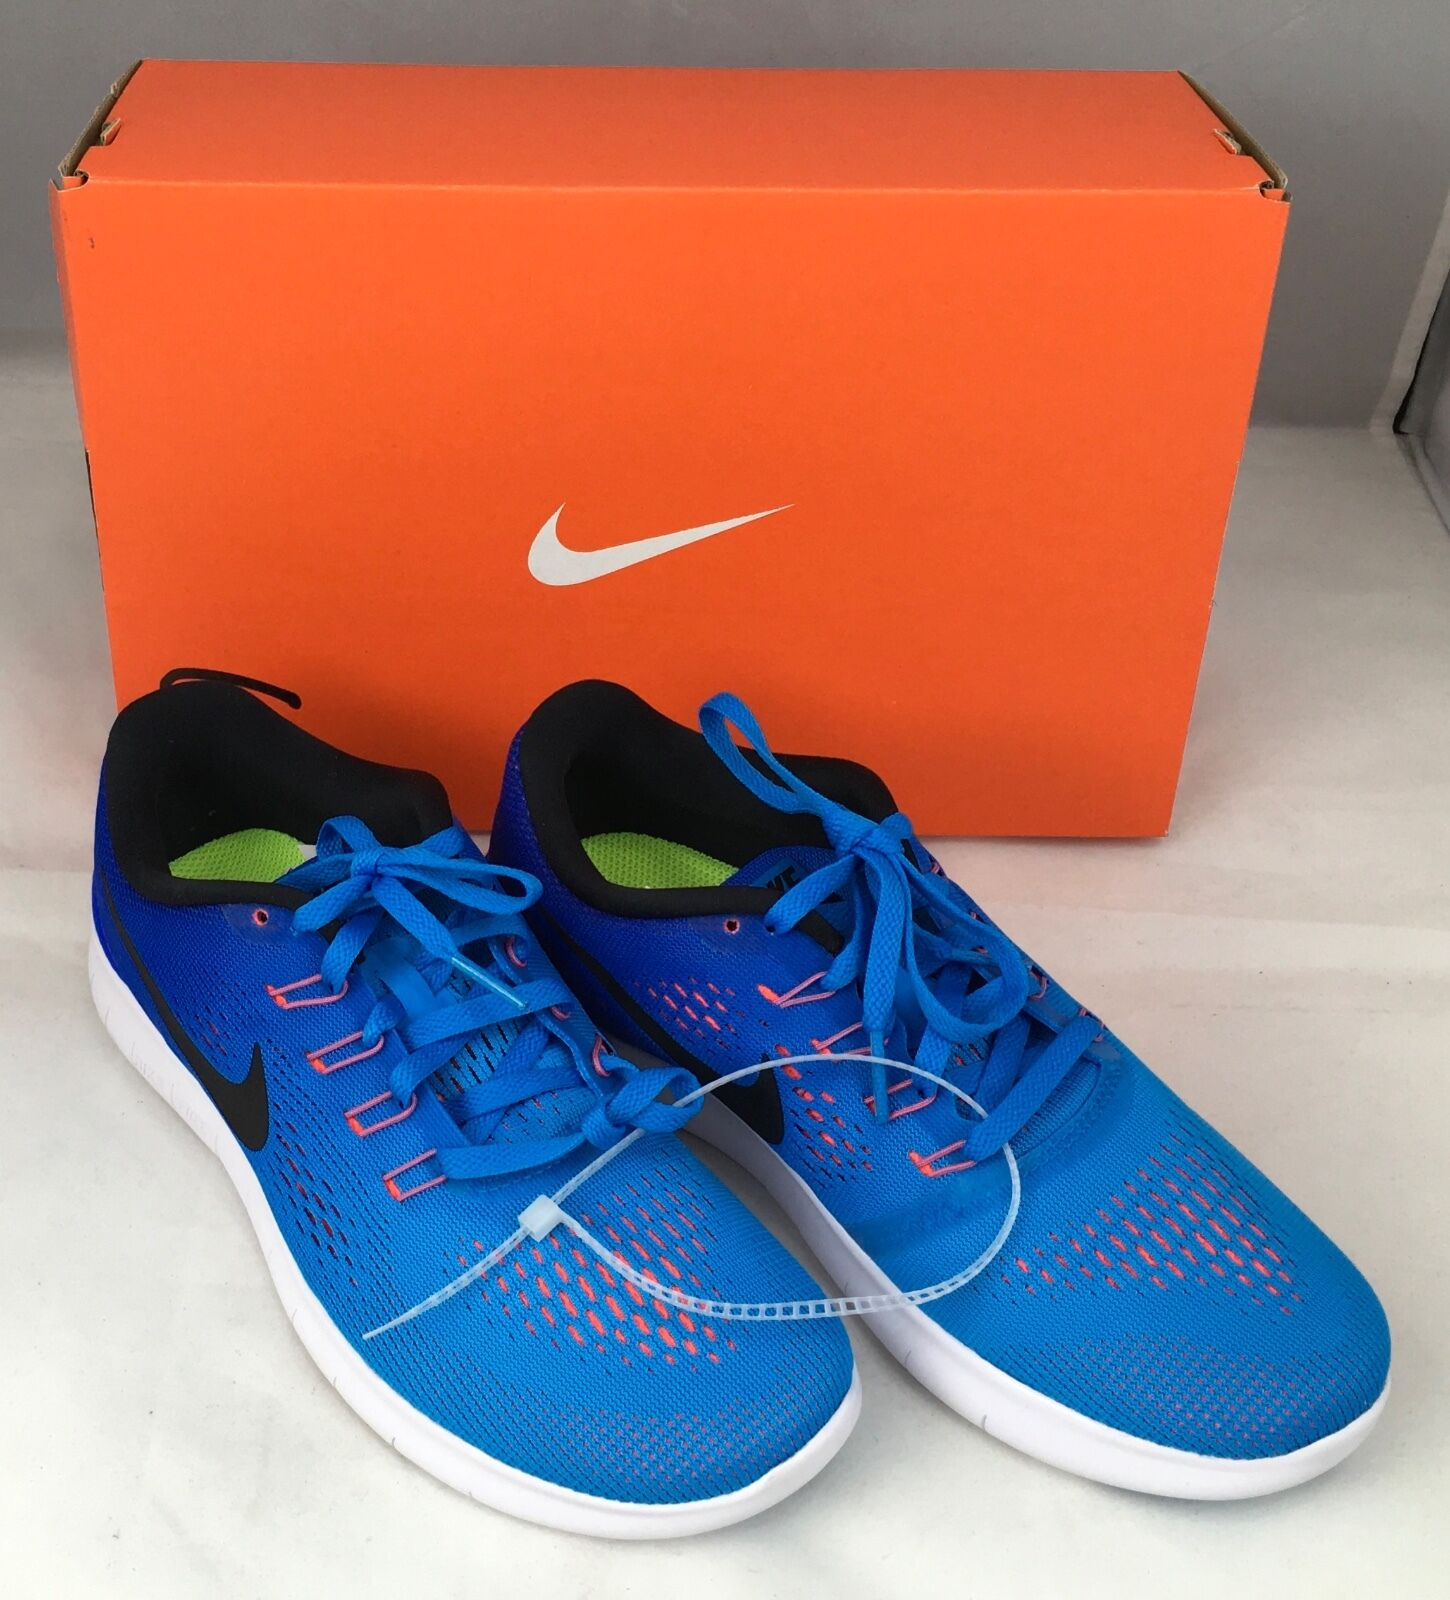 Nike Free RN Women's Running shoes Sneaker bluee Size US 6.5 NIB